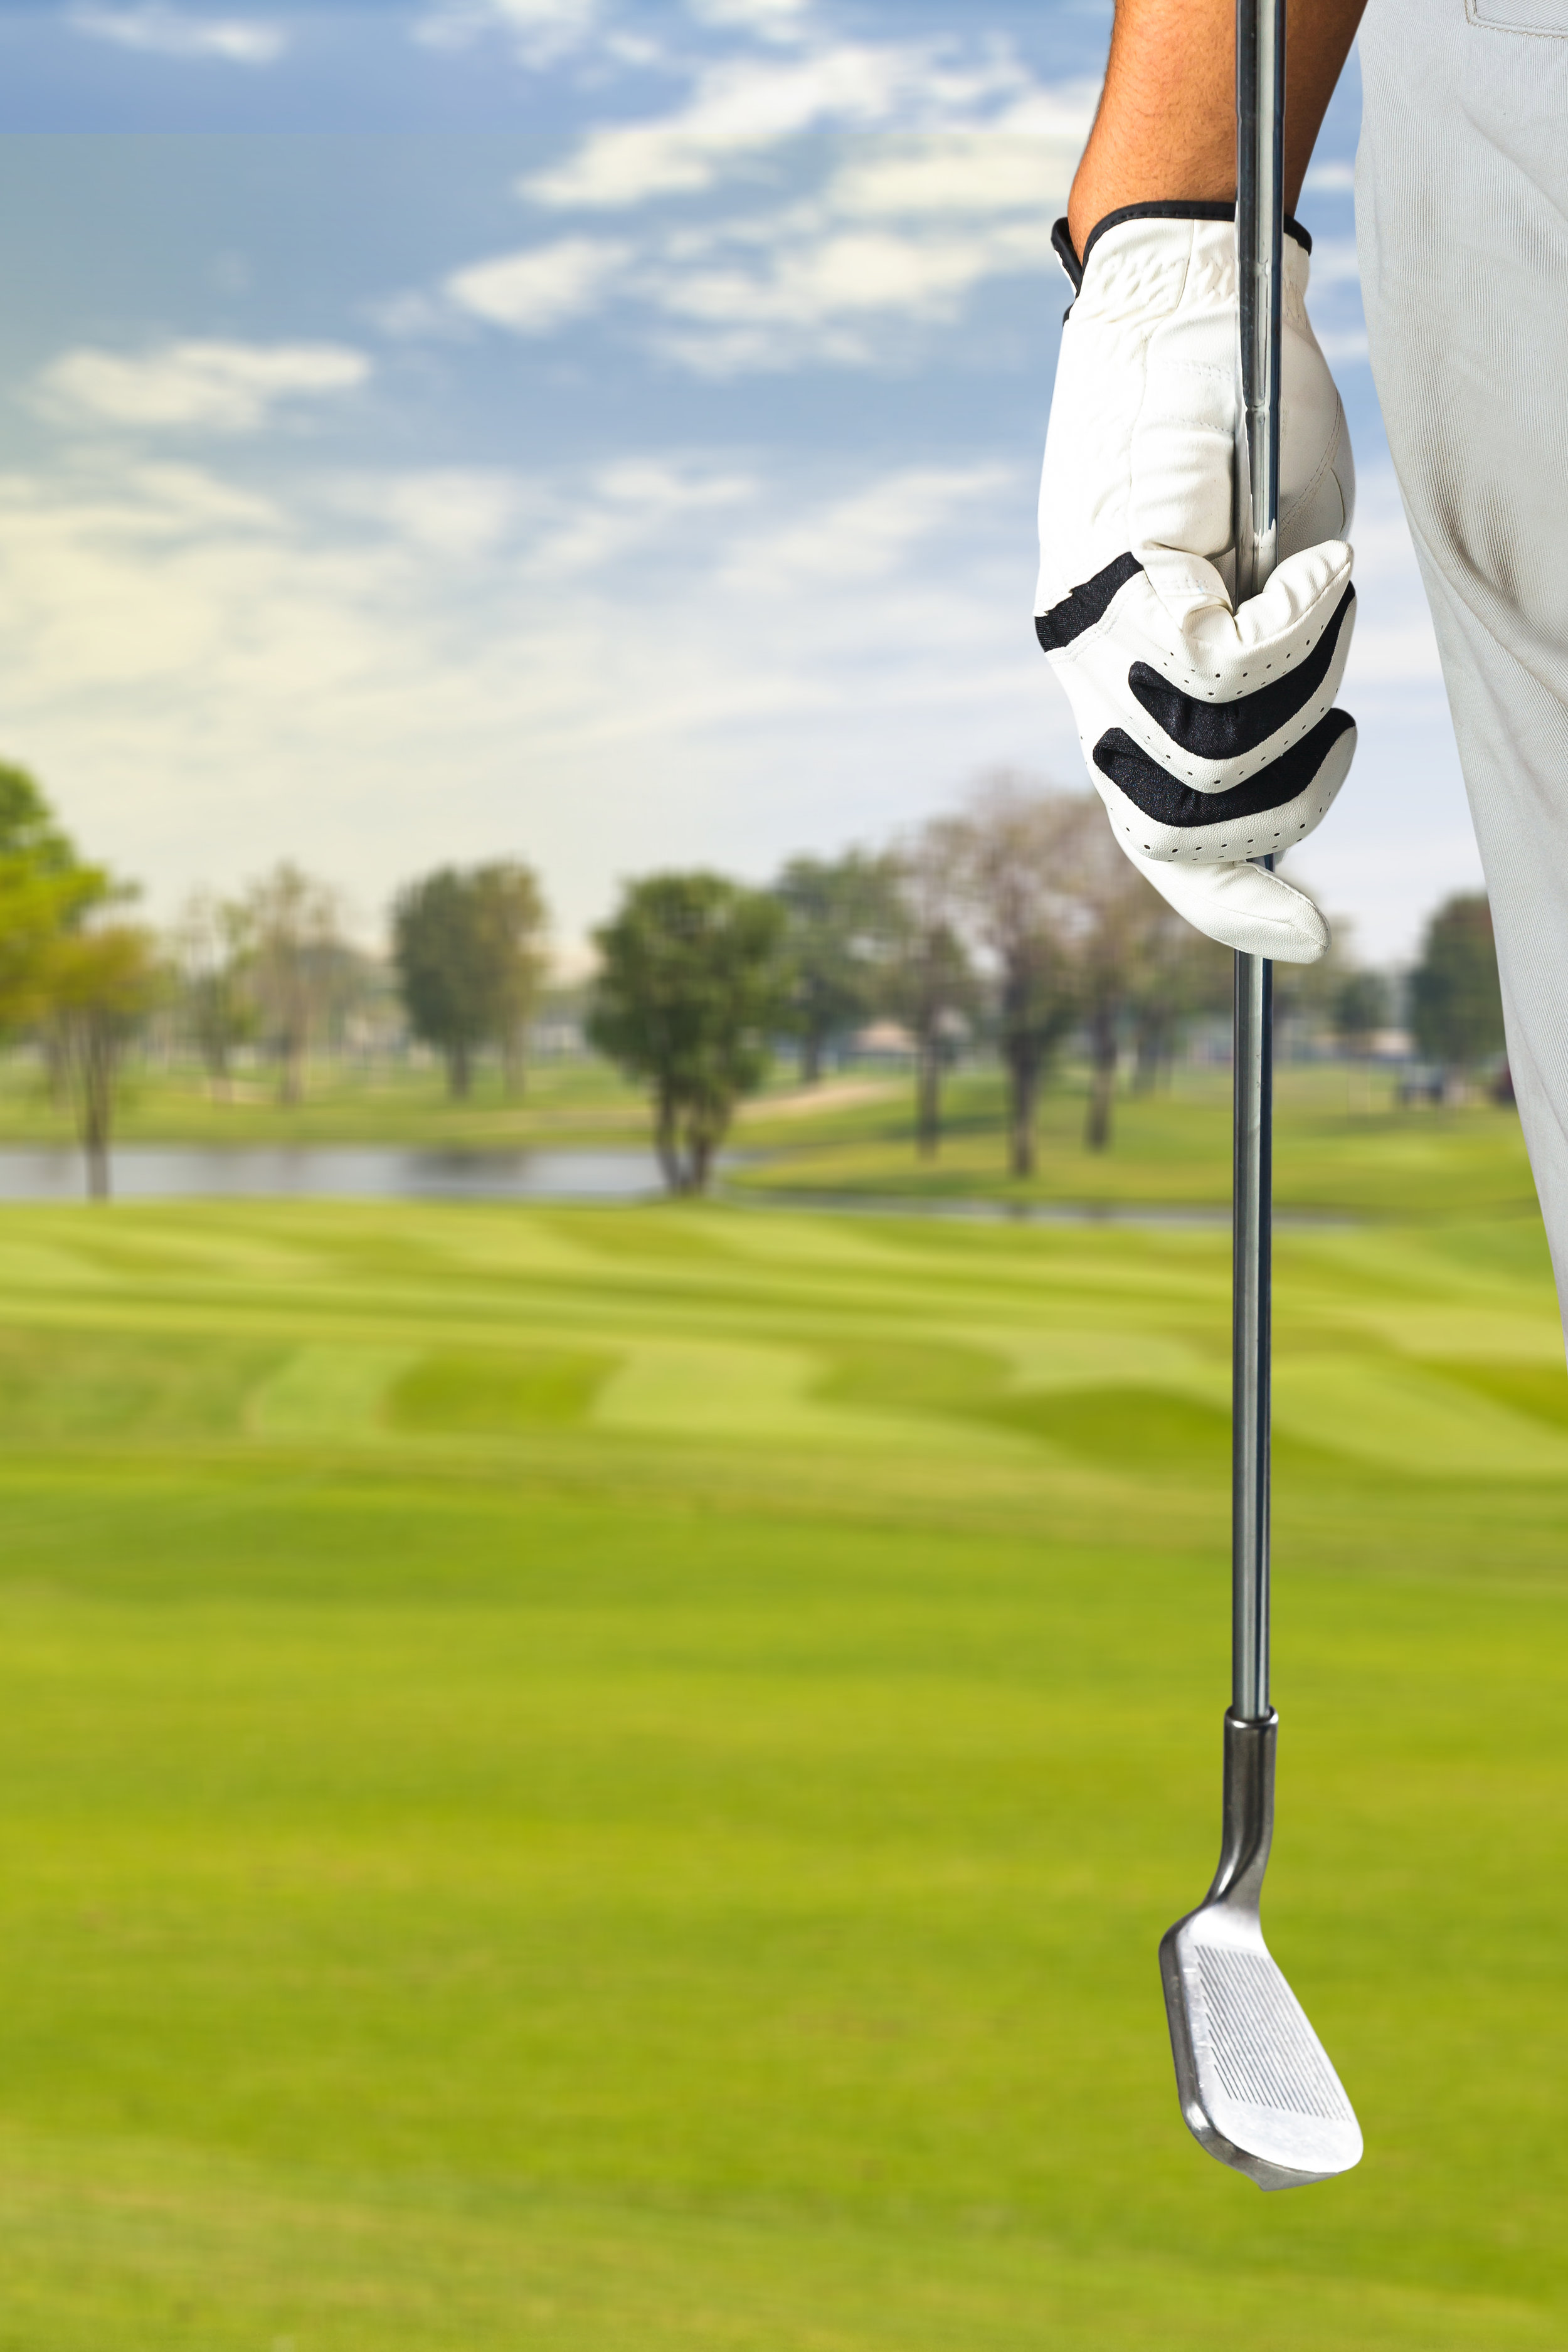 Golf Player Holding Club.jpg